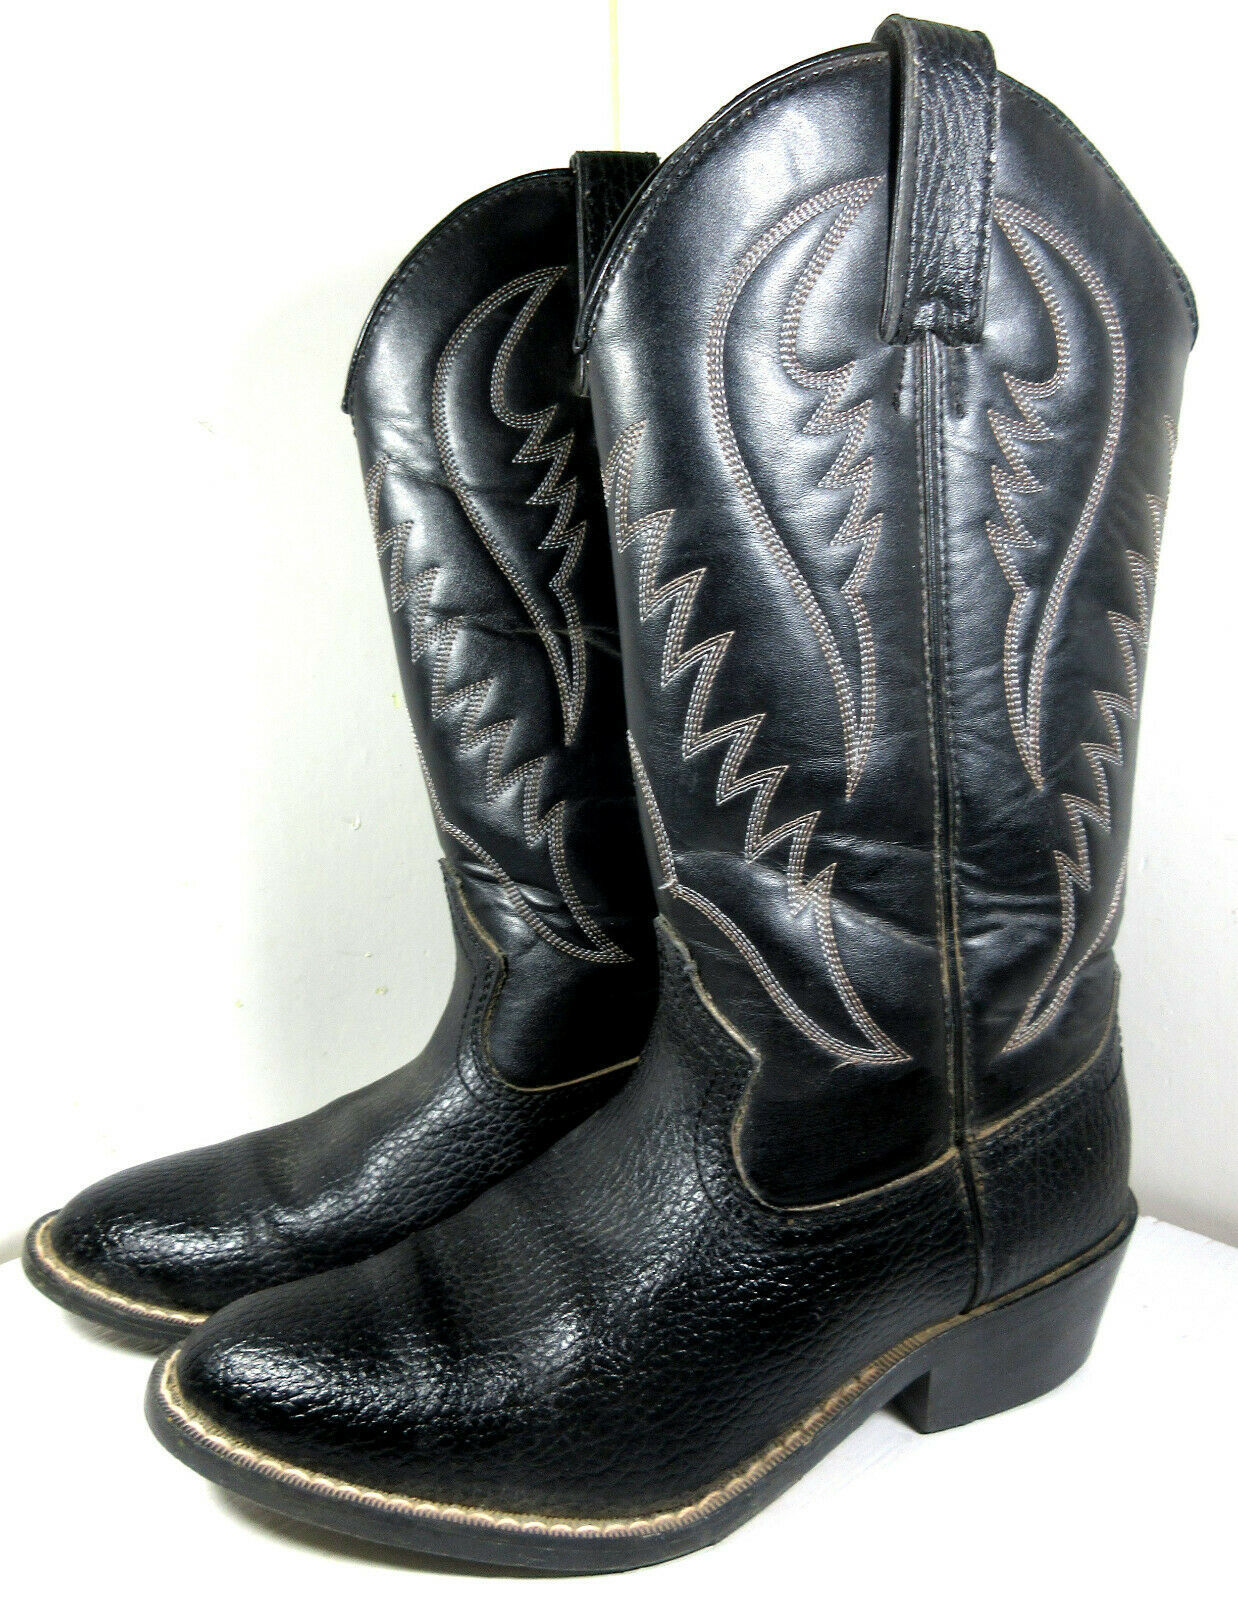 Primary image for Express Rider Trivette Black Faux Leather Cowboy Western Boots Size 8 US Men's